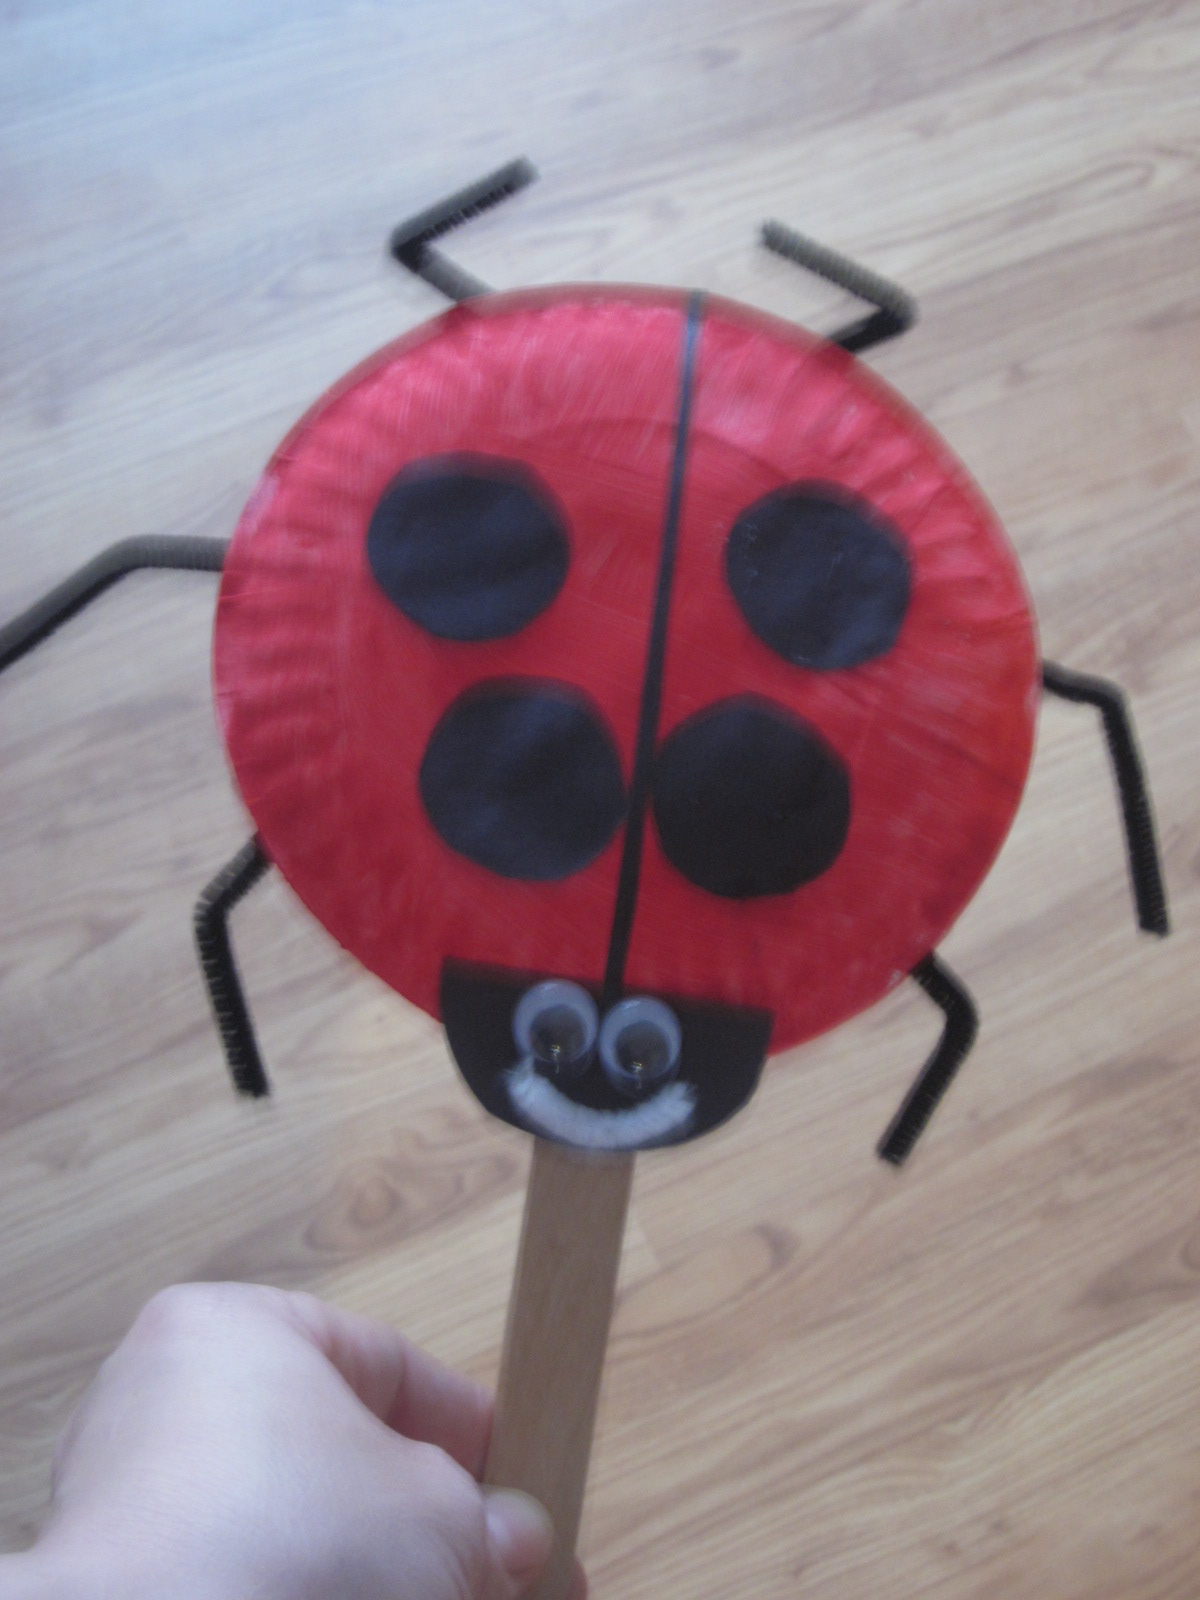 Pin by mel ferrick on therapy crafts pinterest for Ladybug arts and crafts